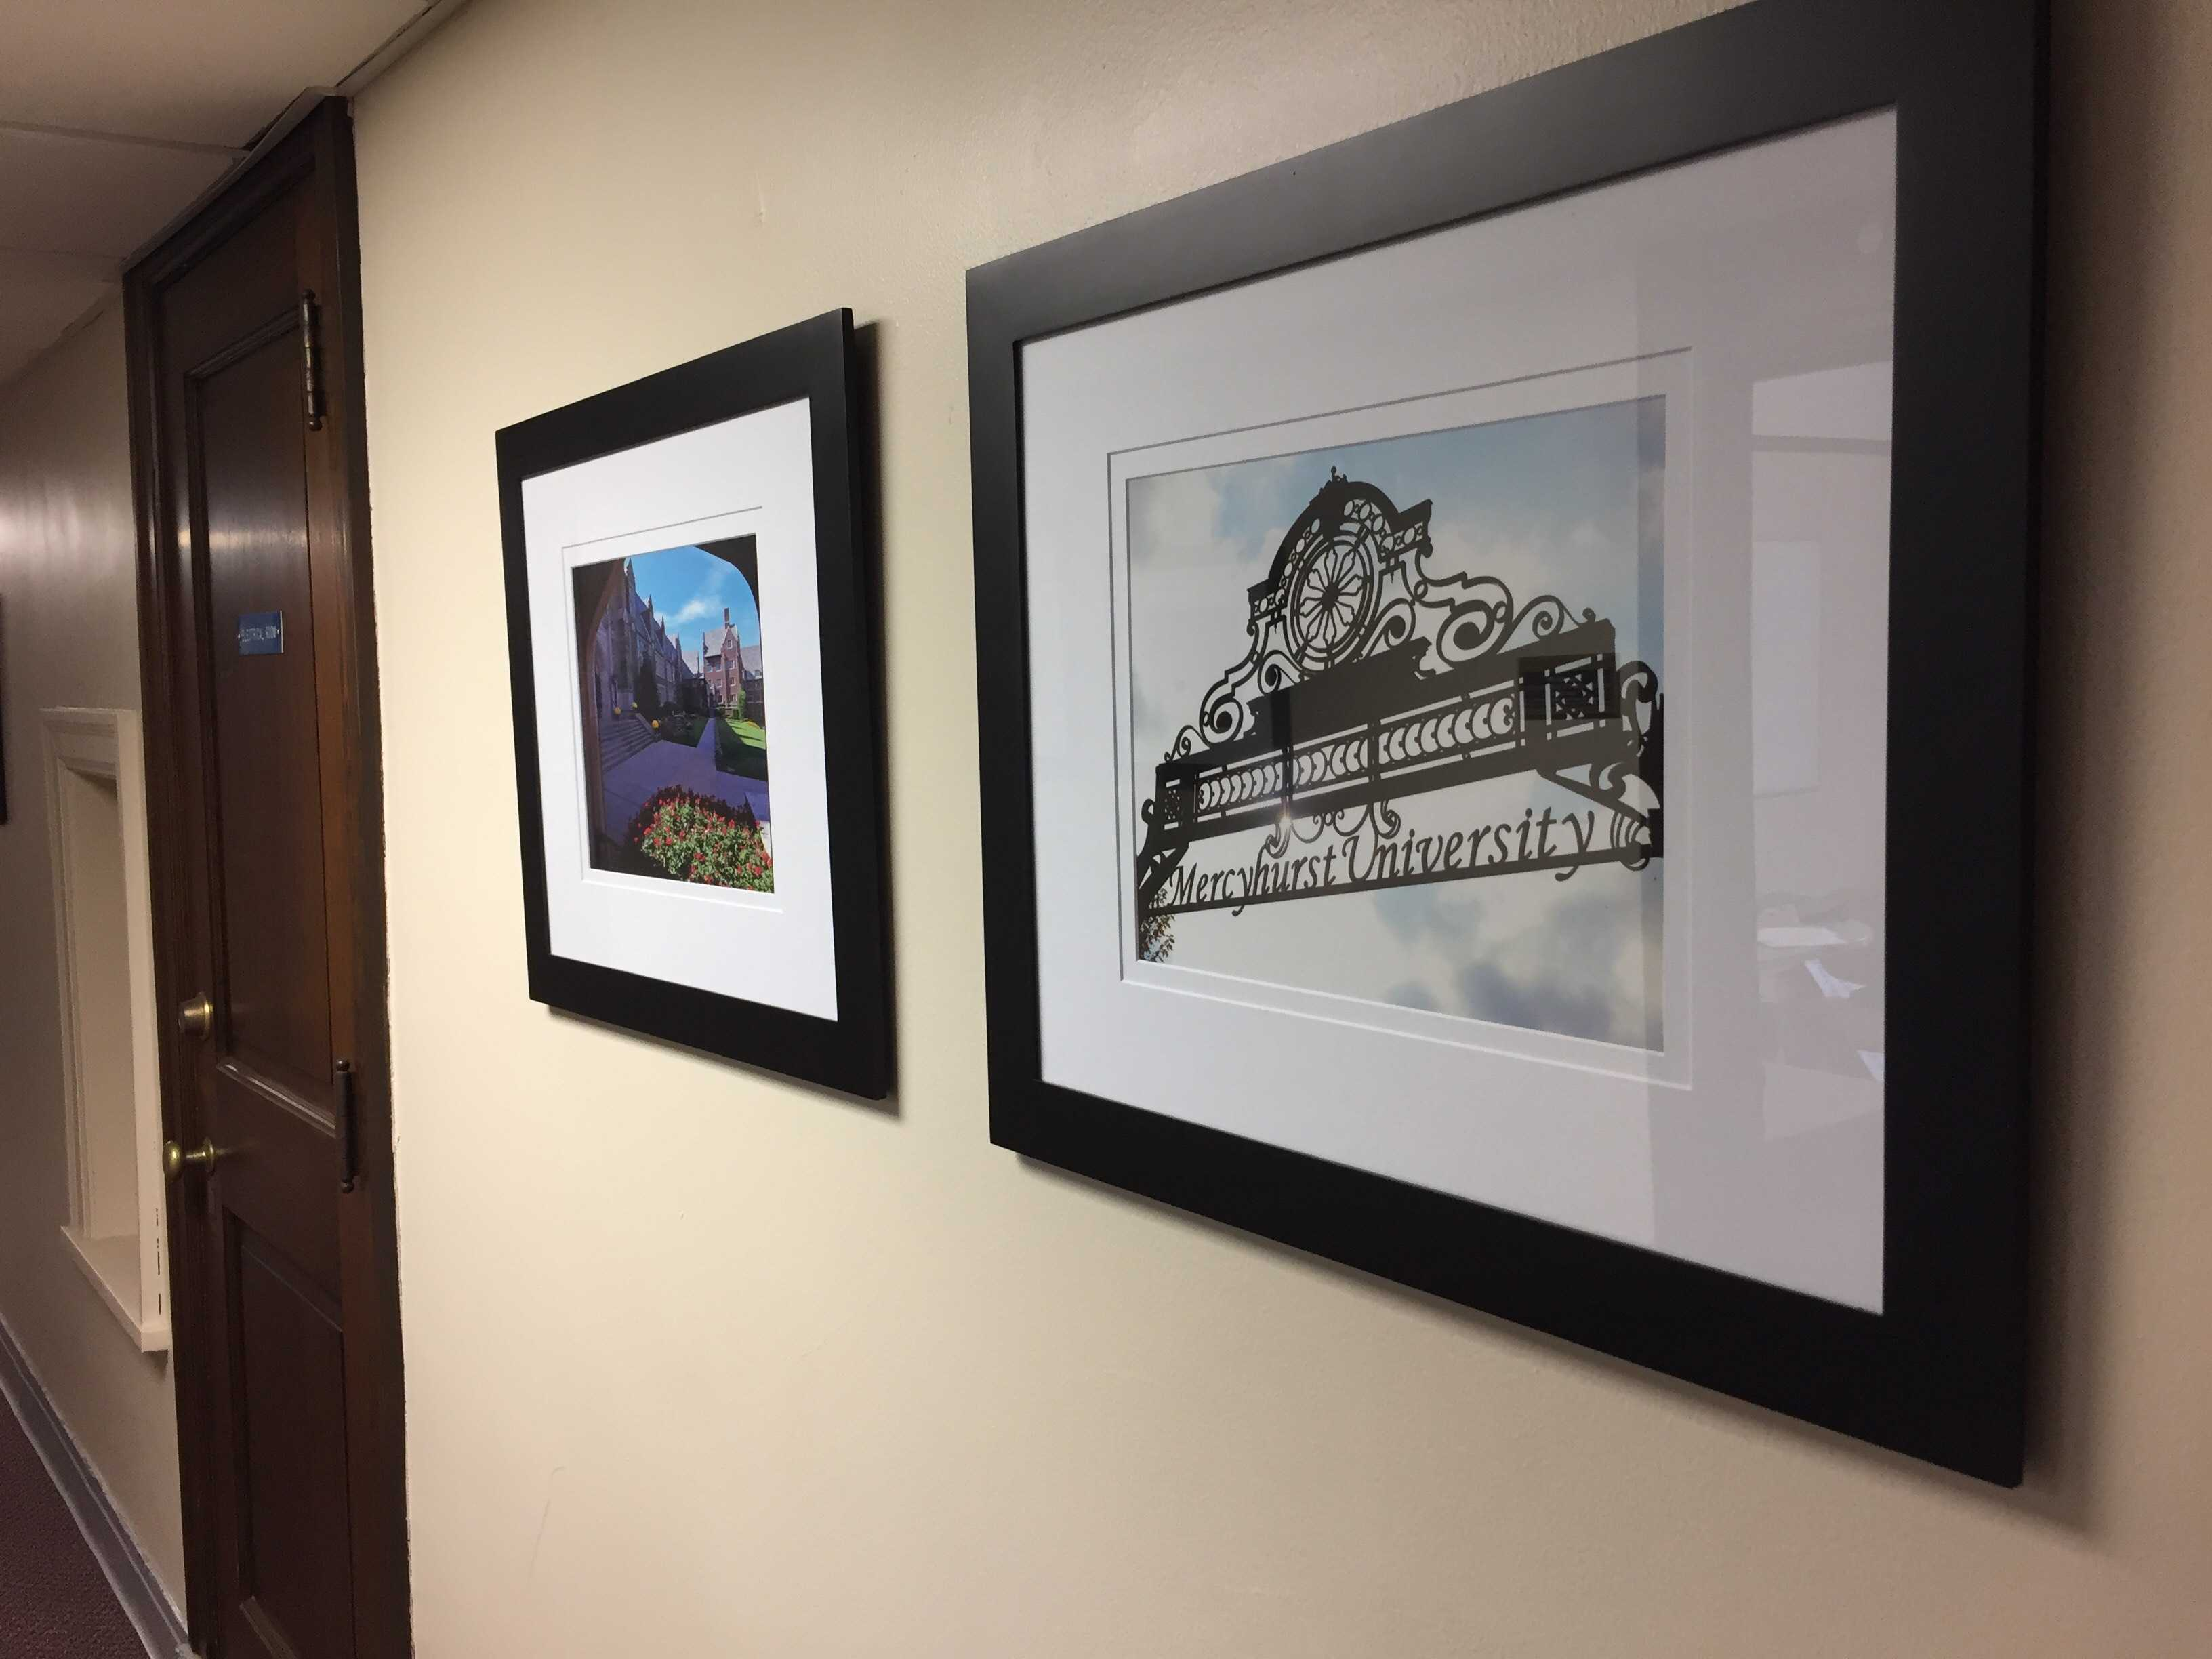 Two of the photos on the second floor of Old Main.